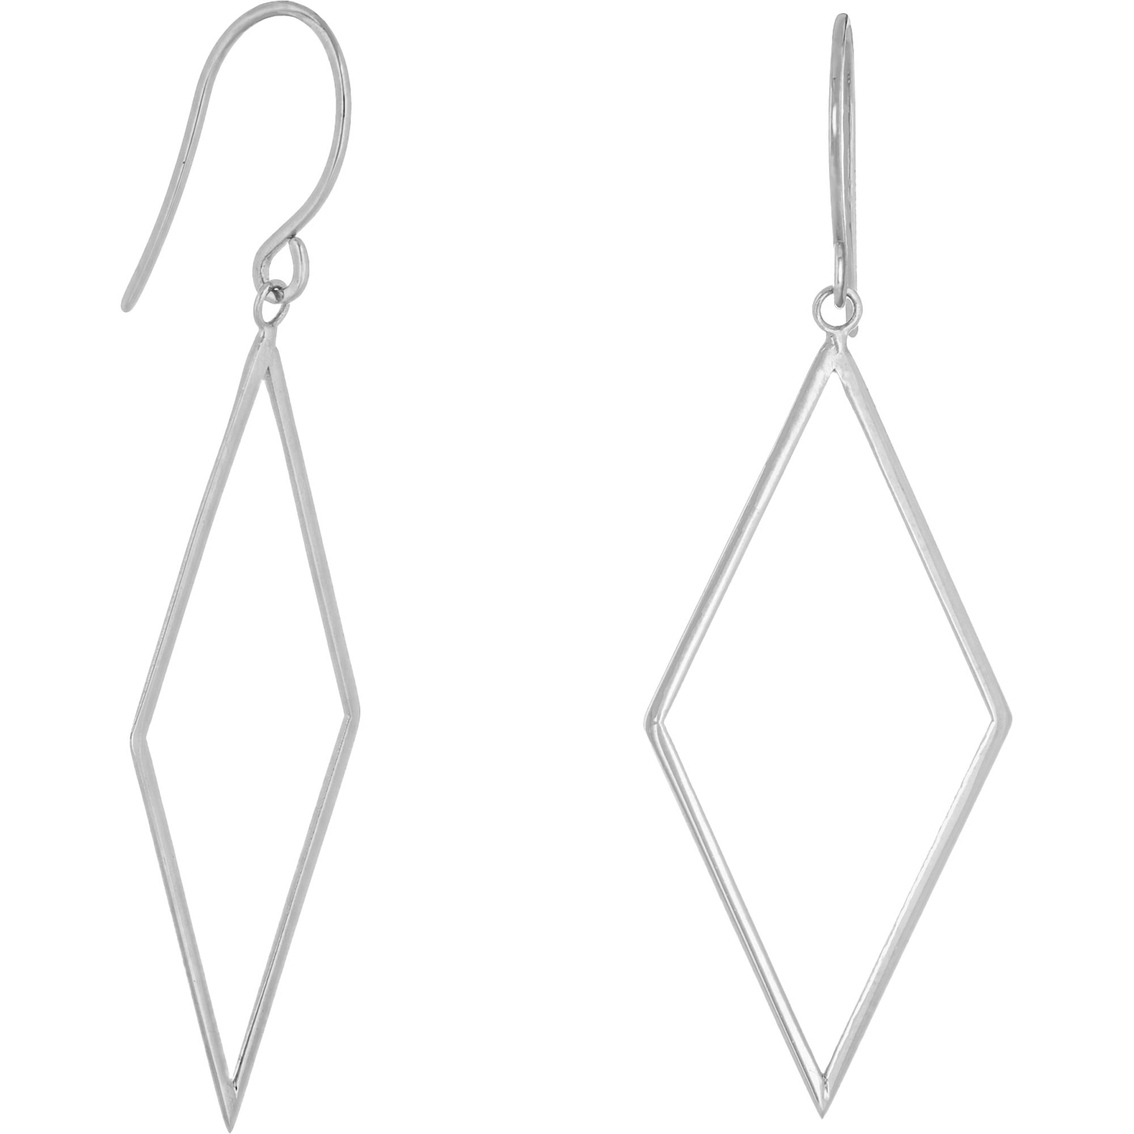 Line Art Earrings : How to draw earrings pixshark images galleries